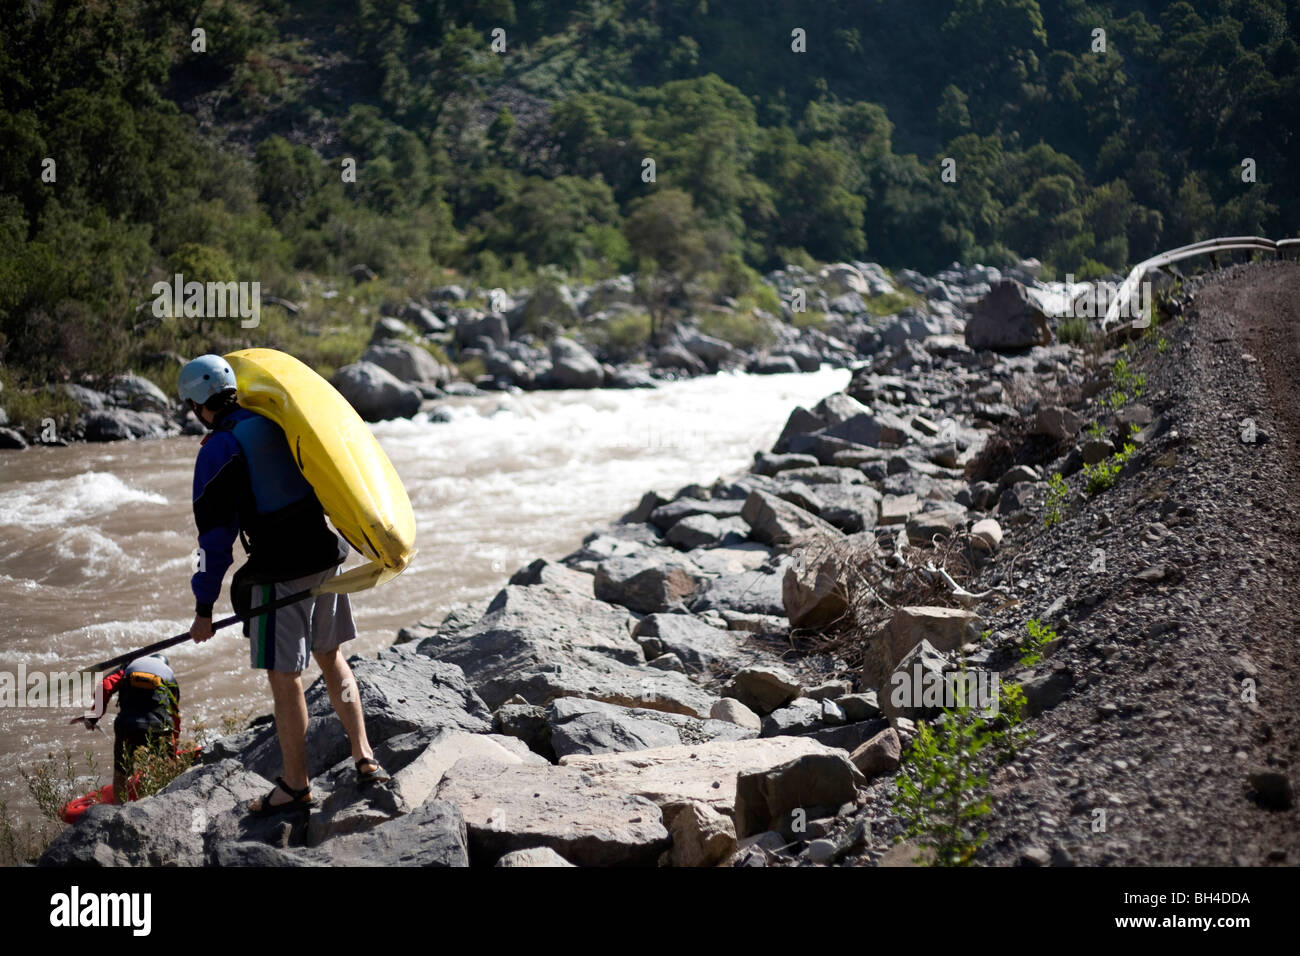 A female kayaker carries a kayak to the put-in on a river. - Stock Image